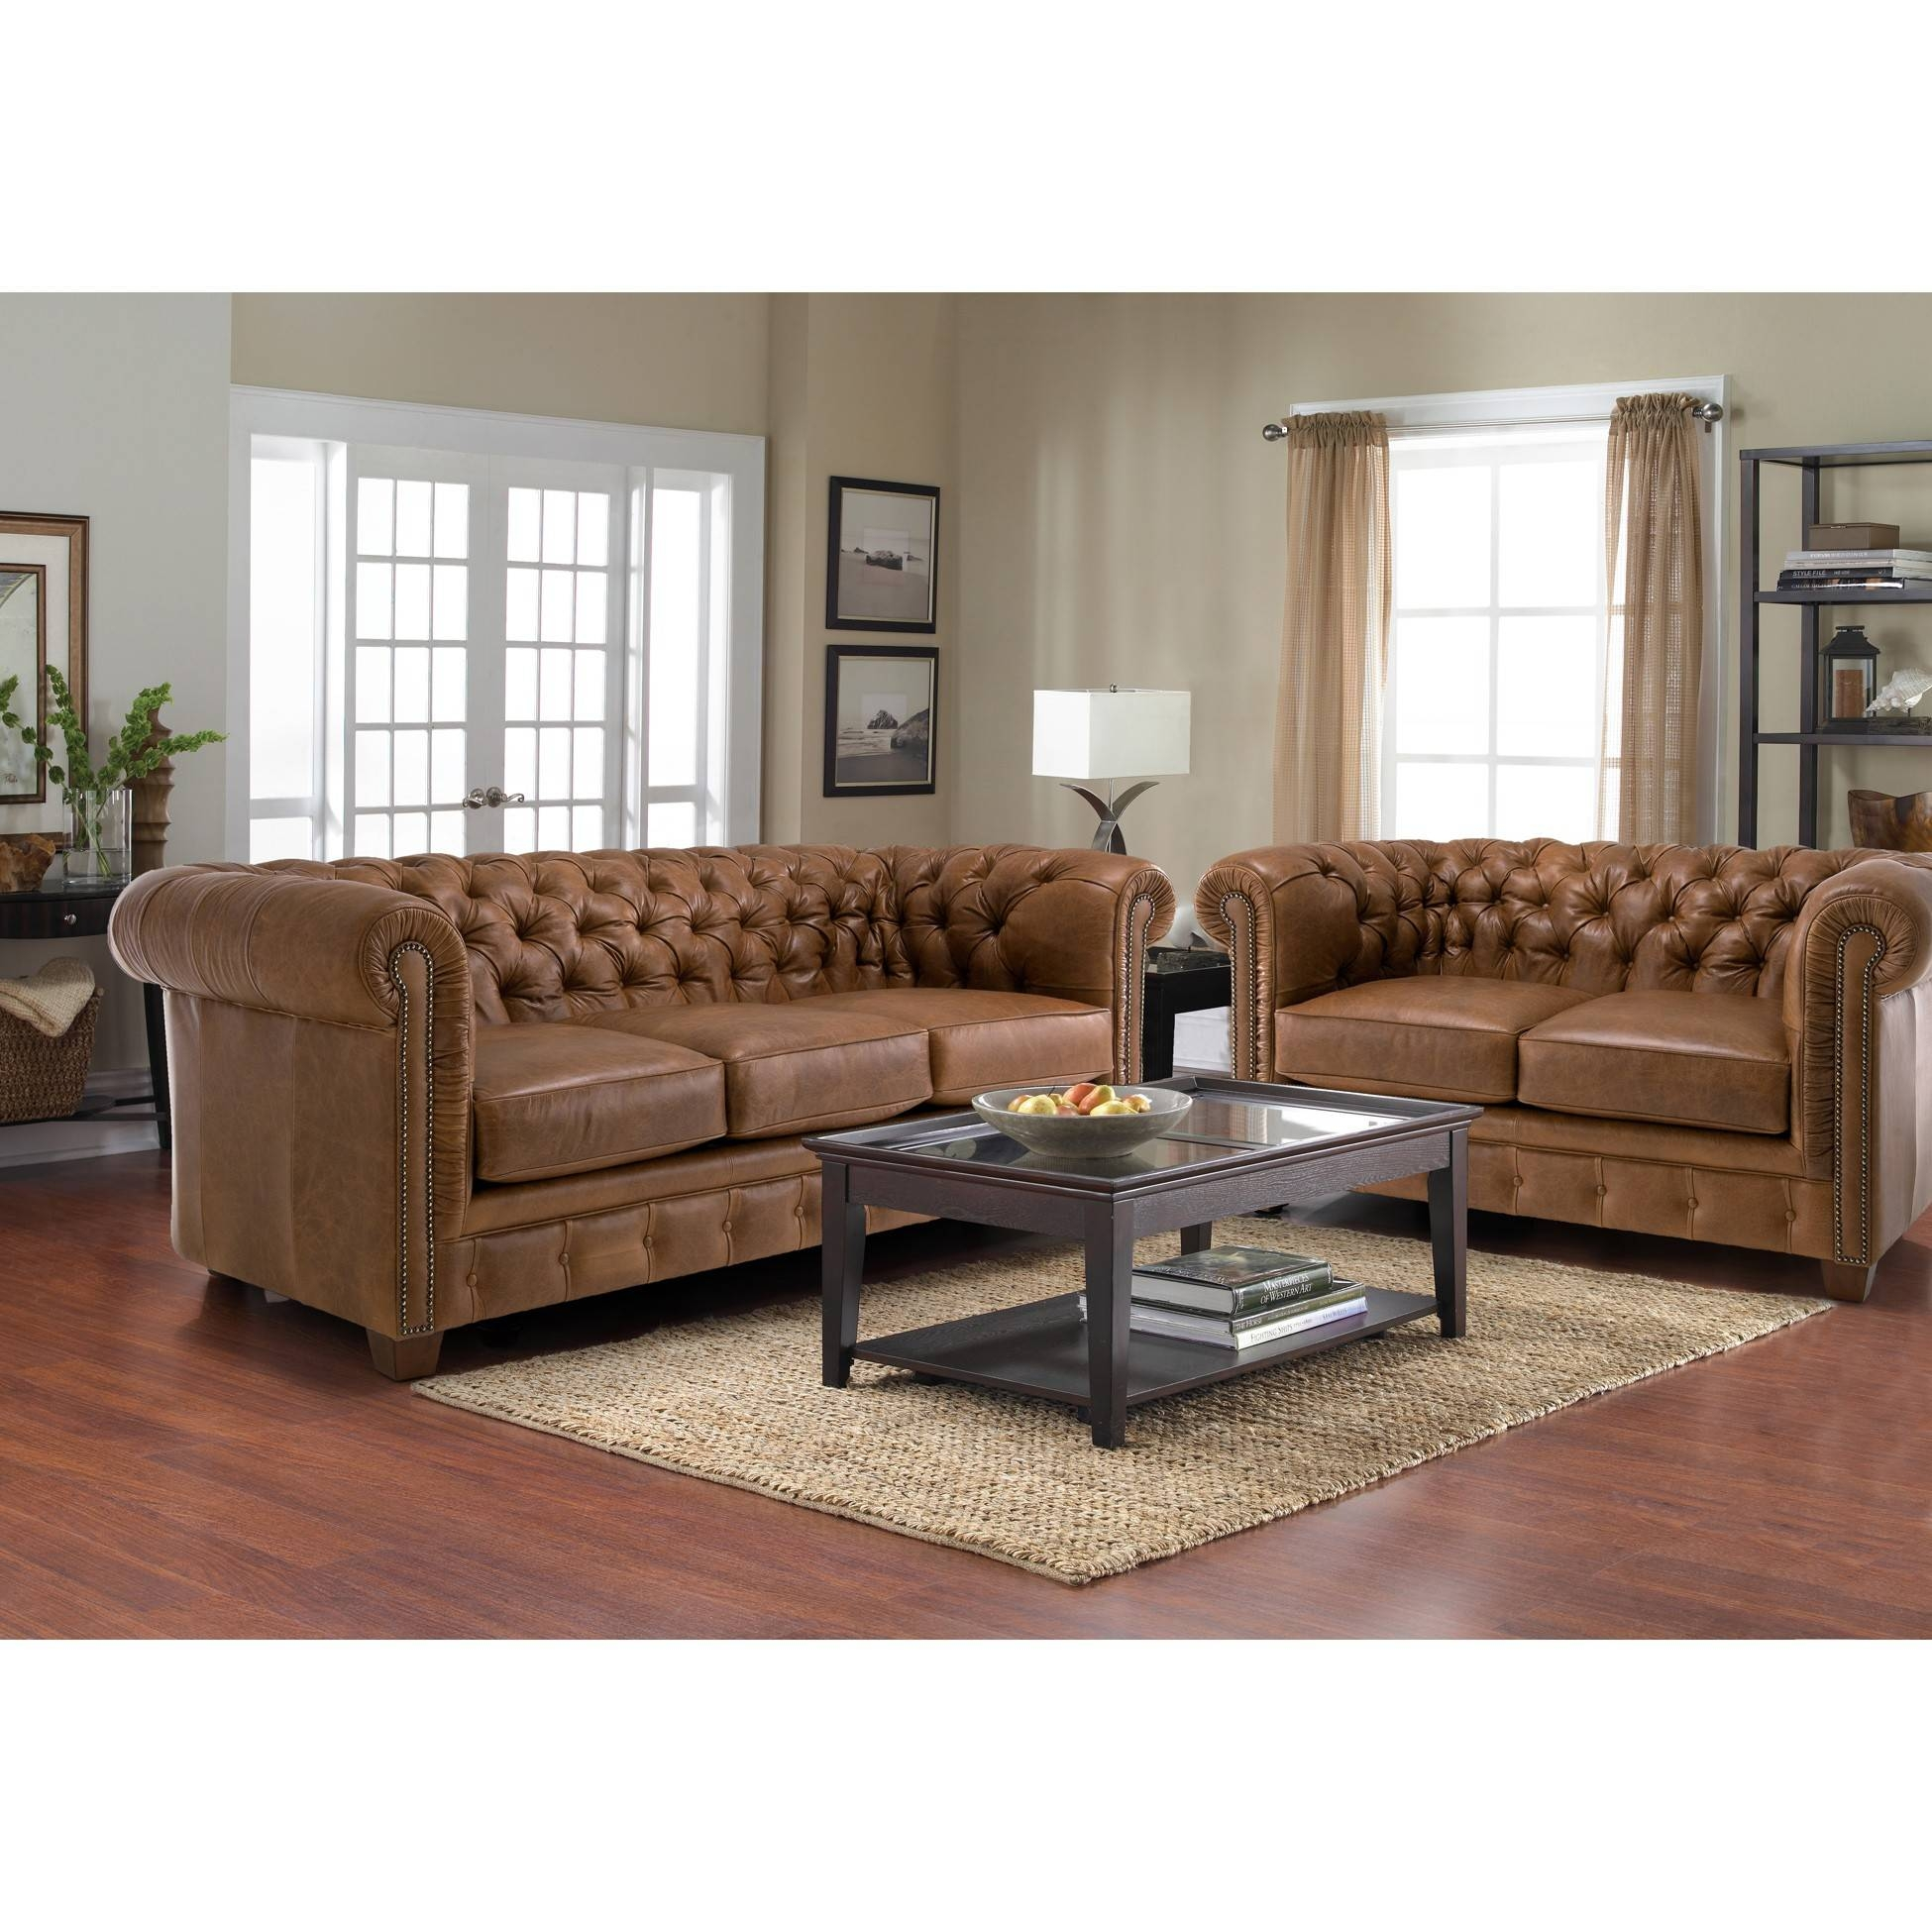 Sofas Center : Distressed Leather Sofa For Dogs Sectional Atlanta within Sofas For Dogs (Image 21 of 30)